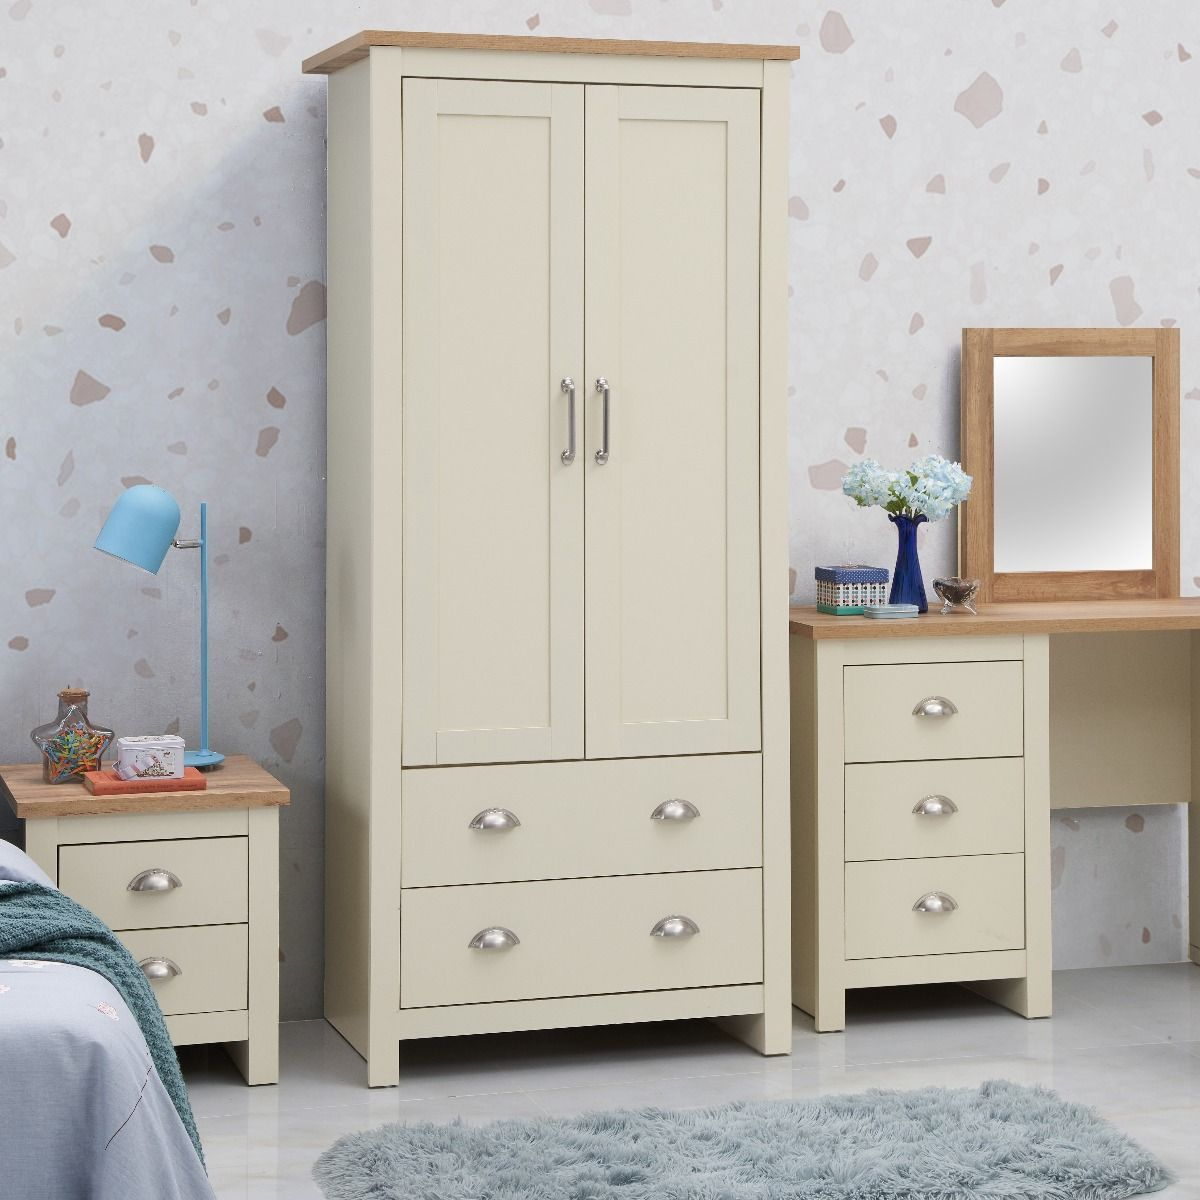 3 Piece Bedroom Set (2 Door Wardrobe, 2+2 Chest, 2 Drawer Bedside)